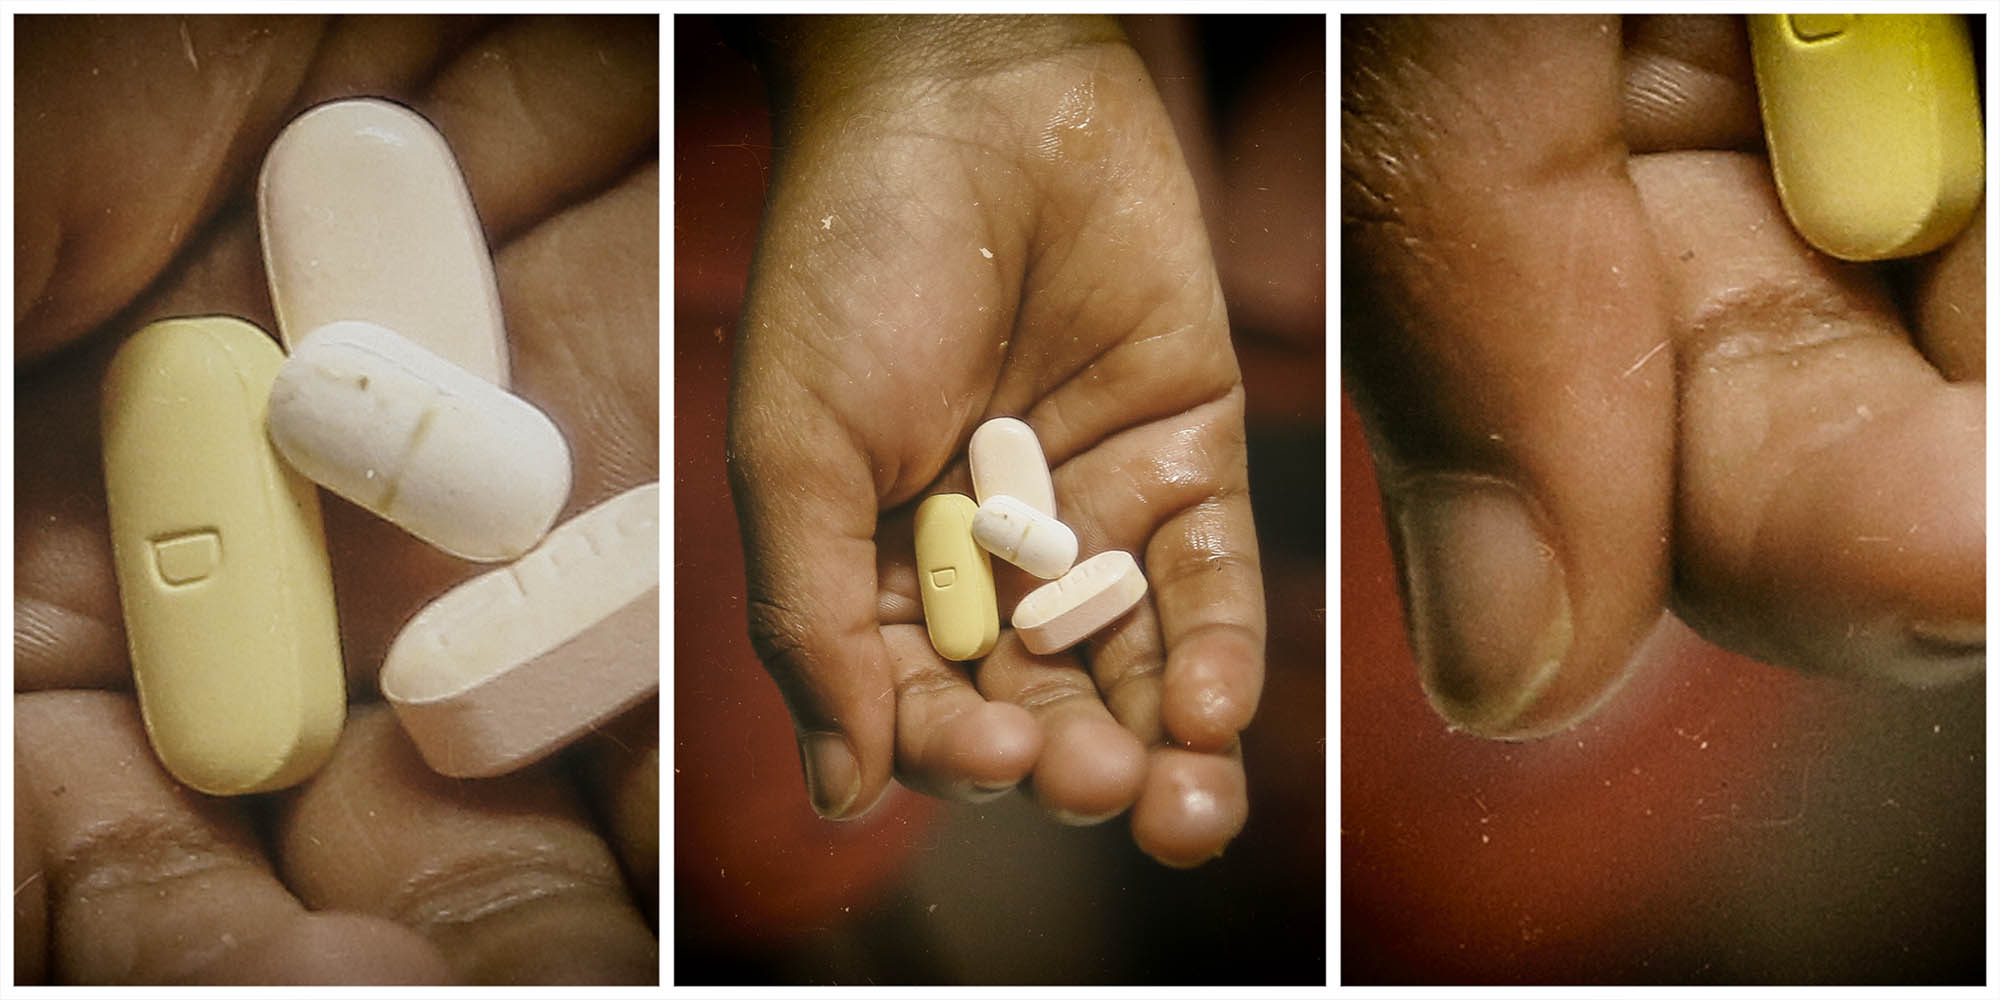 Maverick Citizen: Nuances in SA's HIV epidemic: Seven graphs that tell the story